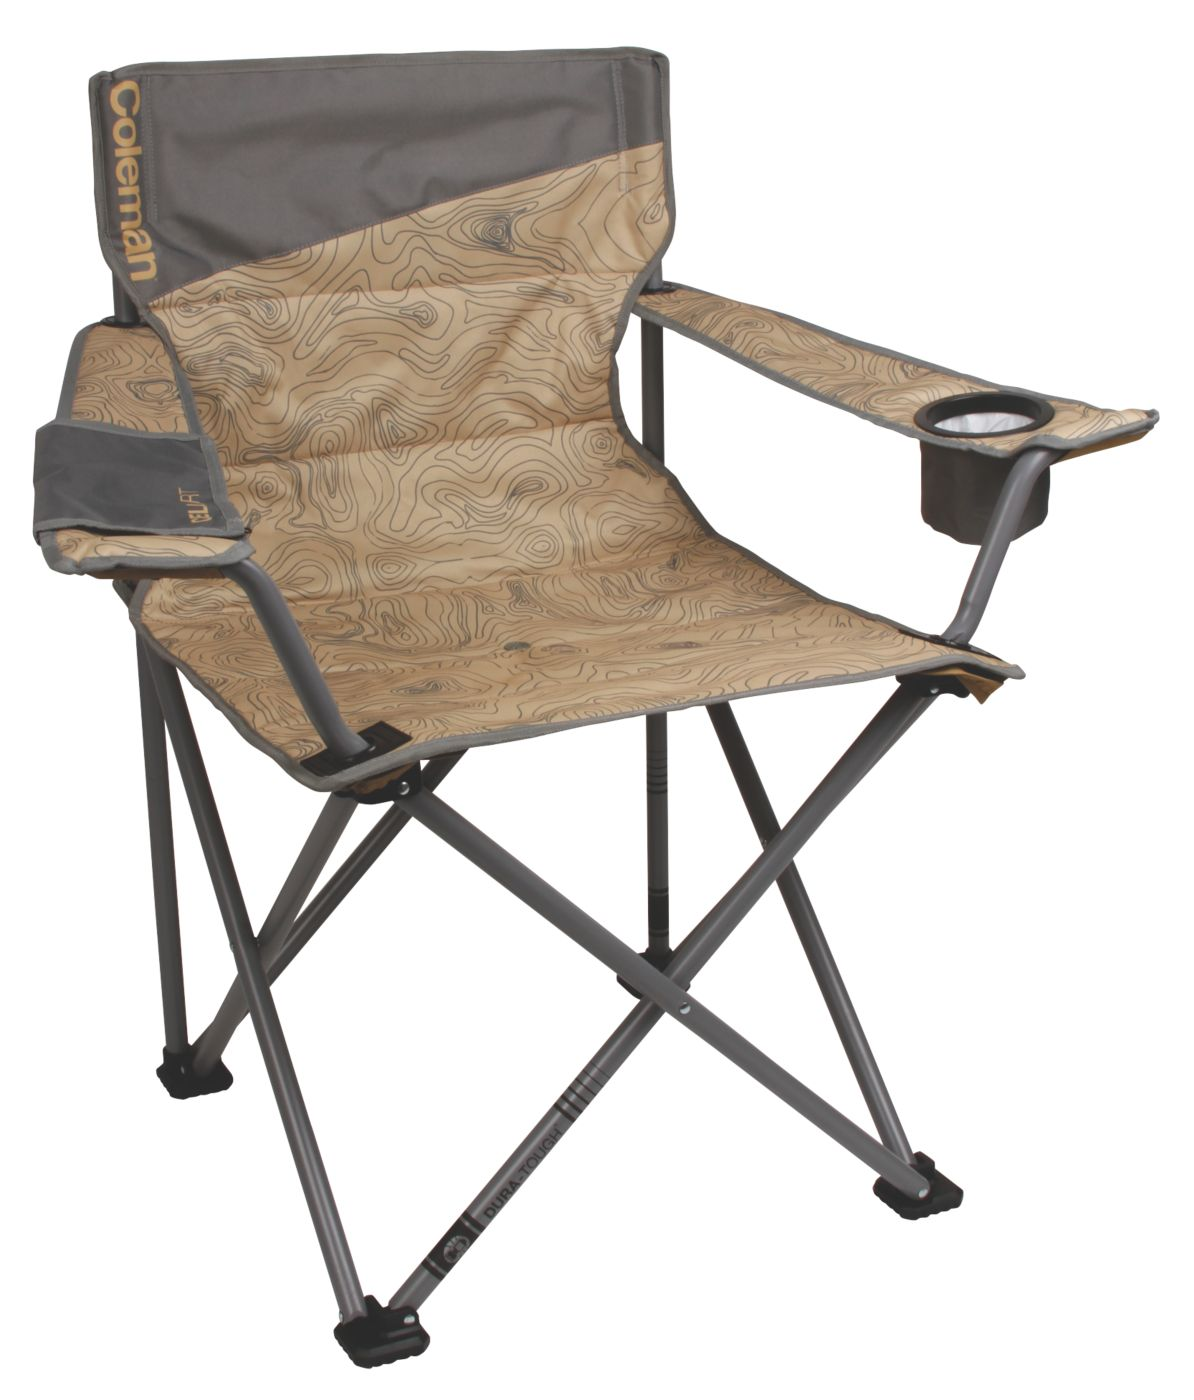 Collapsible Chair Big N Tall Quad Chair Coleman